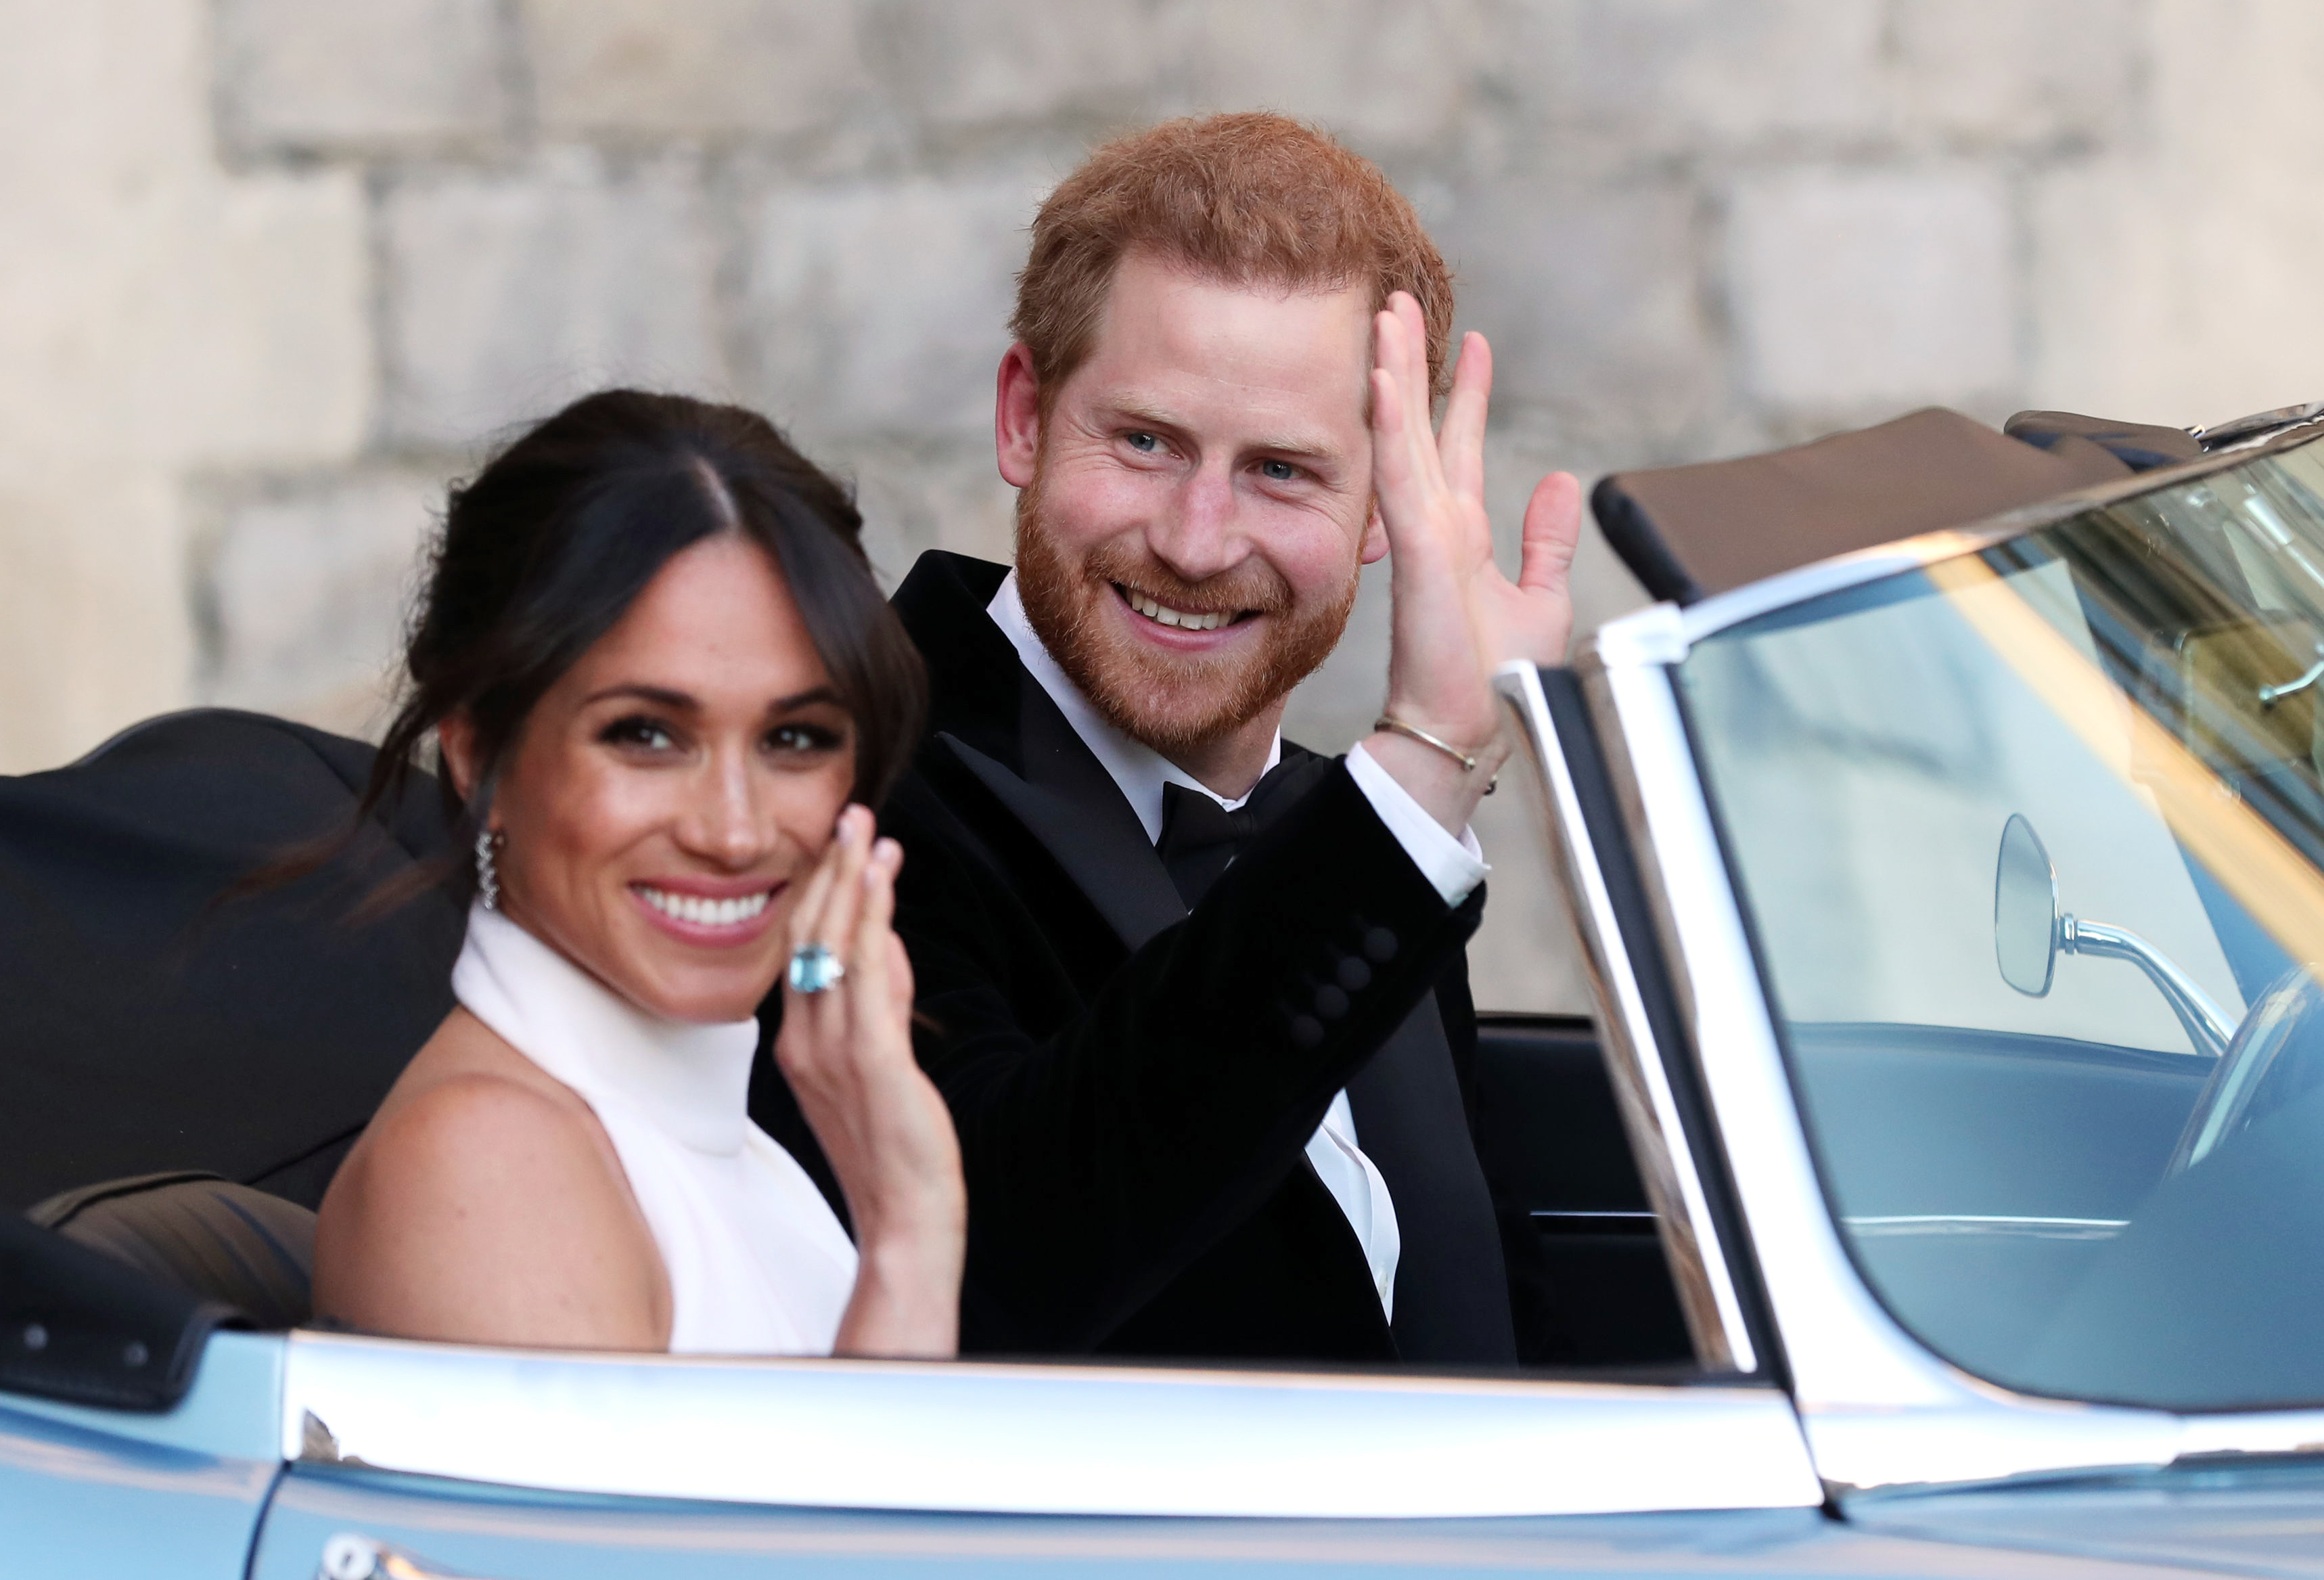 Harry and Meghan after their wedding